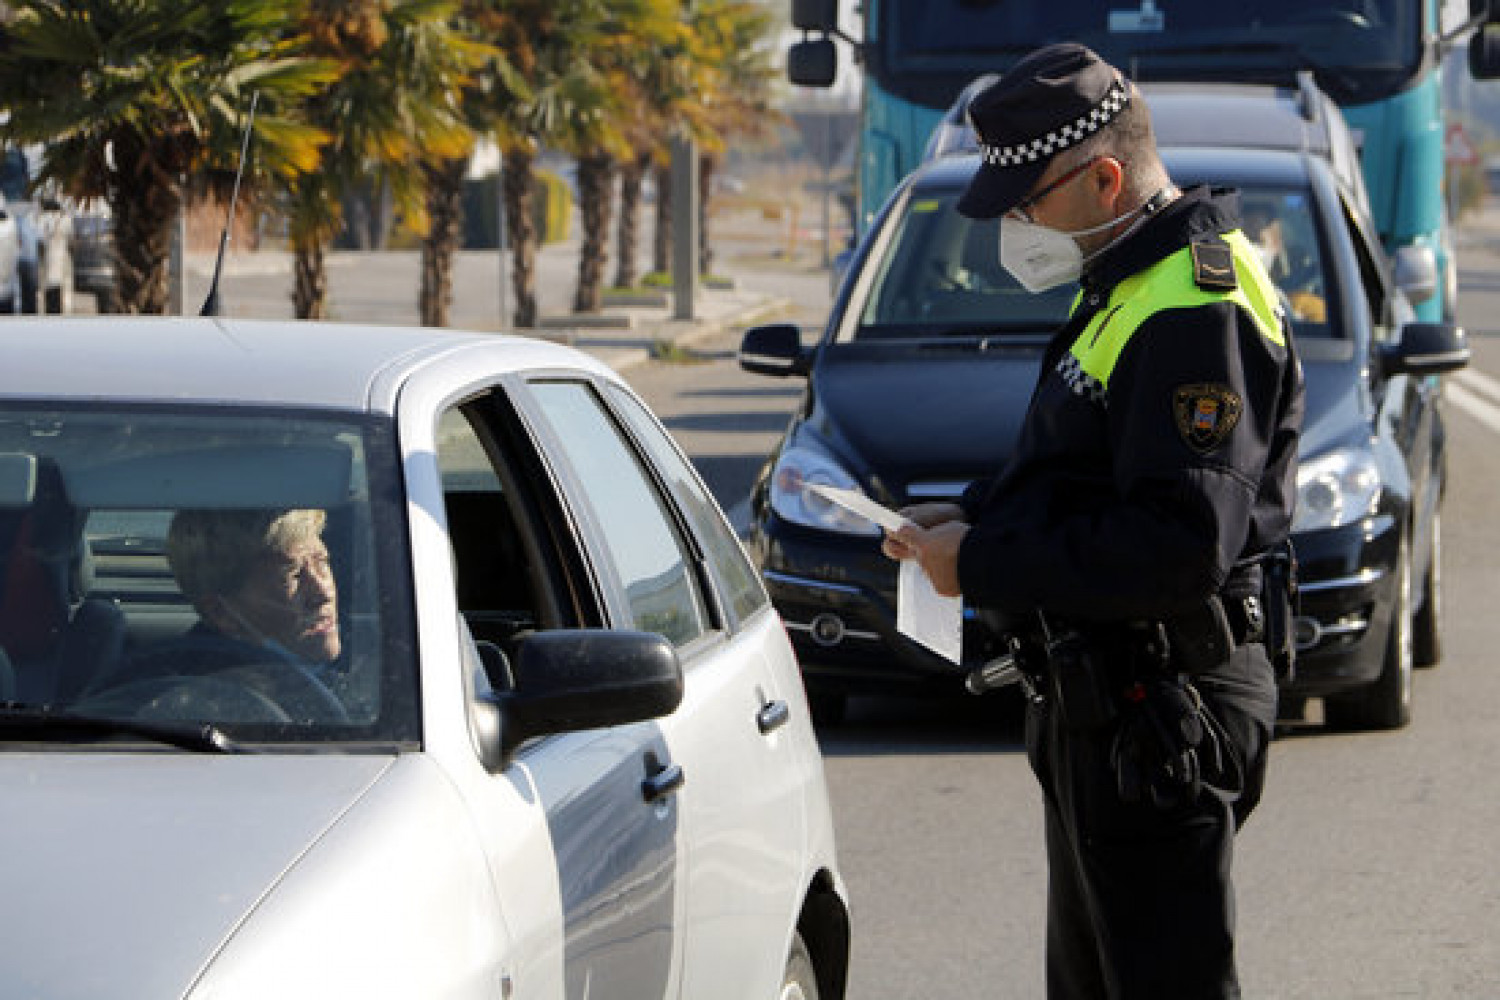 A police officer stopping a driver in Mollerussa to enforce Covid mobility restrictions (by Oriol Bosch)